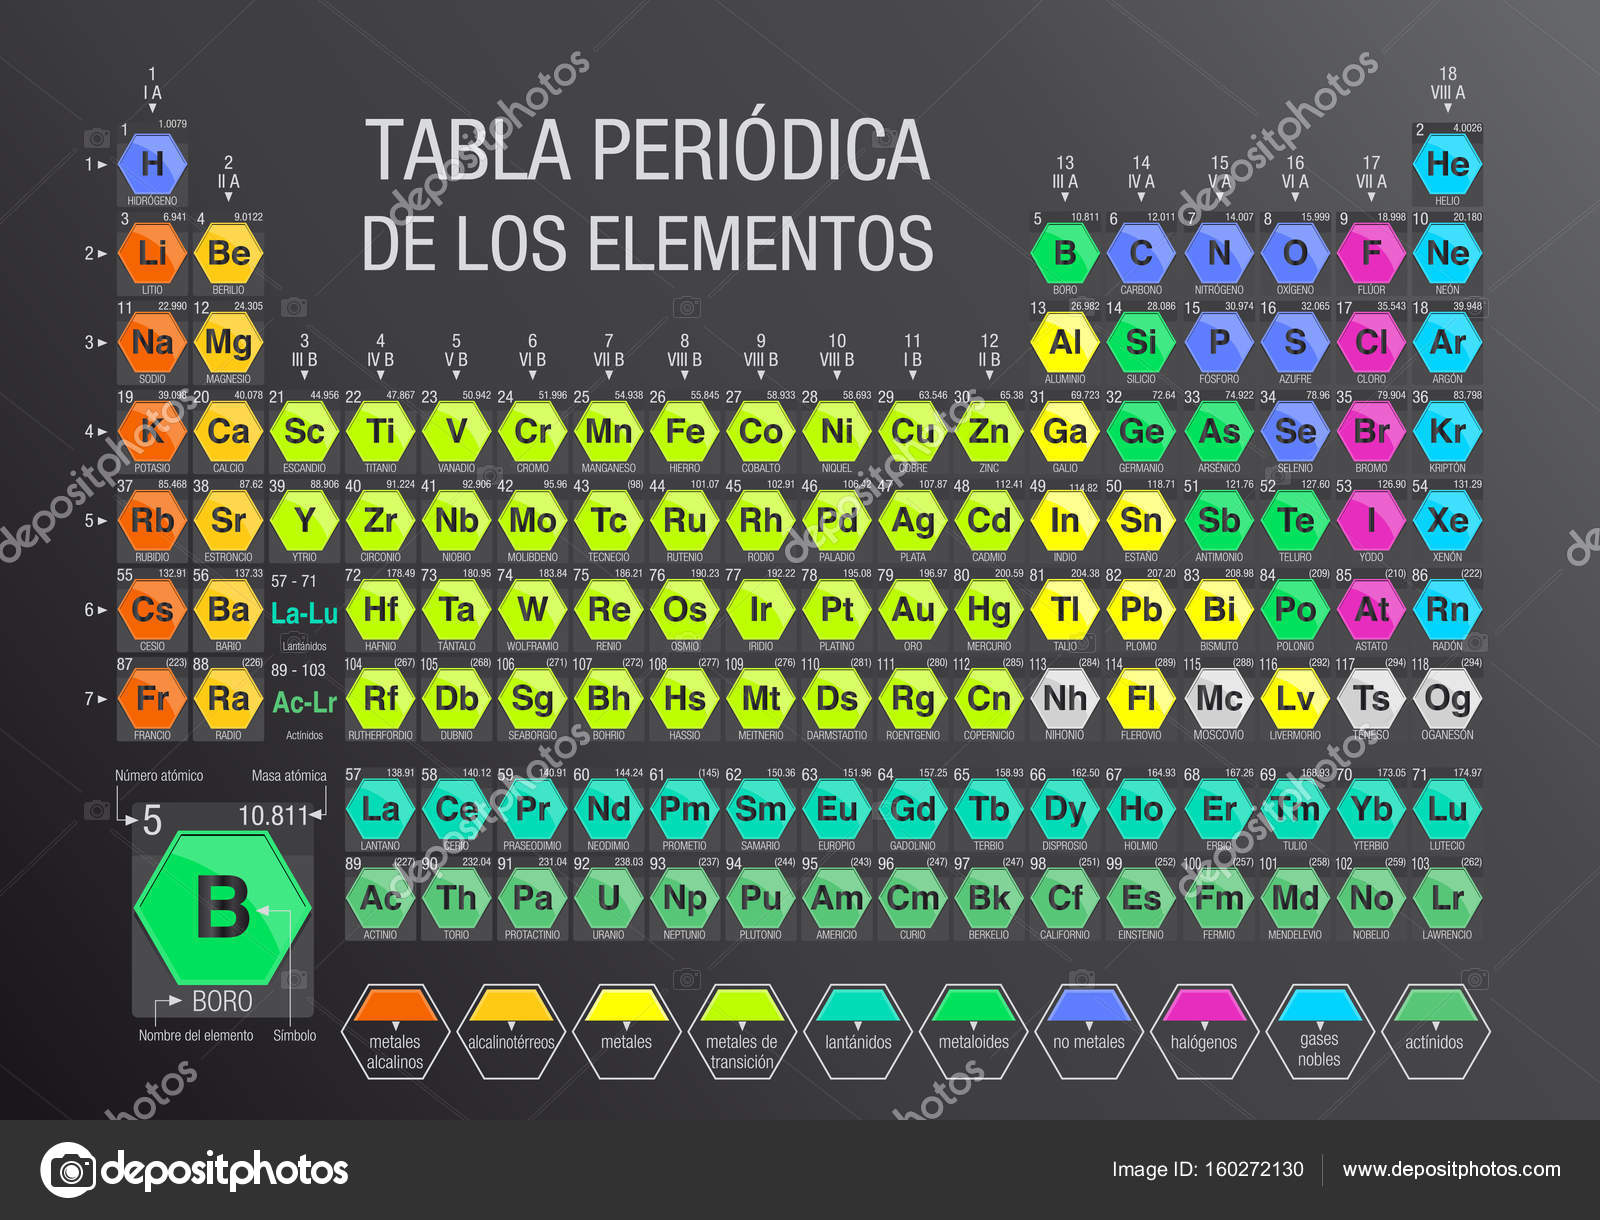 Tabla periodica de los elementos periodic table of elements in tabla periodica de los elementos periodic table of elements in spanish language formed by modules in the form of hexagons in gray background with the 4 urtaz Gallery